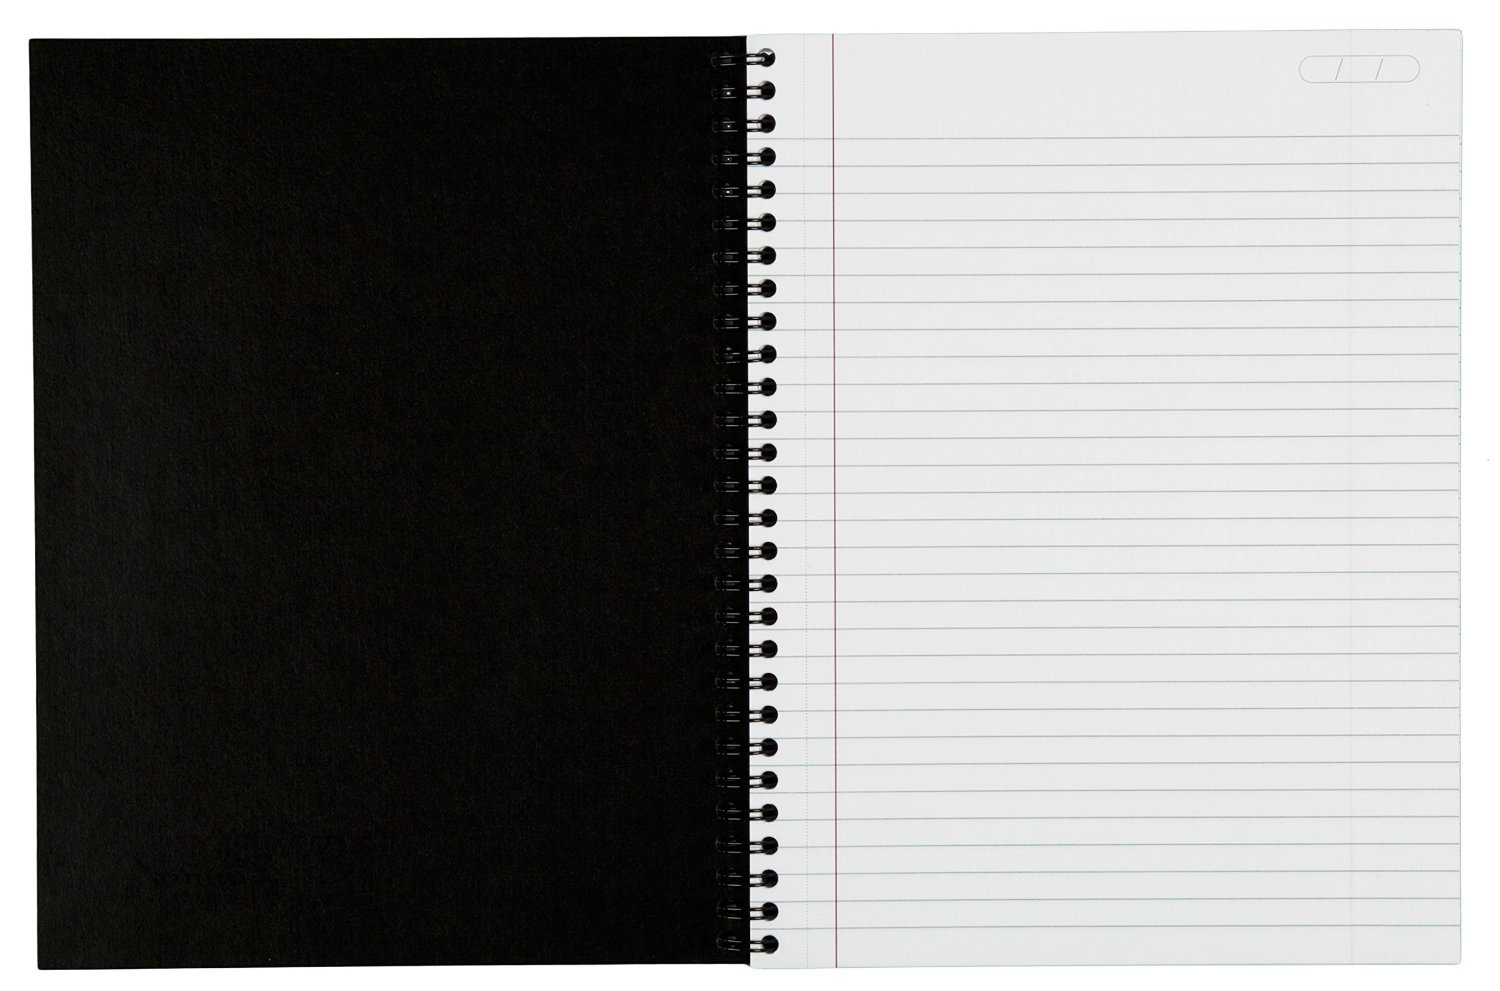 Mead Cambridge Wirebound Business Notebook, Notebook, Notebook, Legal Rule, 6 5 8 x 9 1 2 Inches, 1 Subject, Weiß, 80 Sheets per Pad (06672) by Mead B012BRZBLW   Schön und charmant  84b061